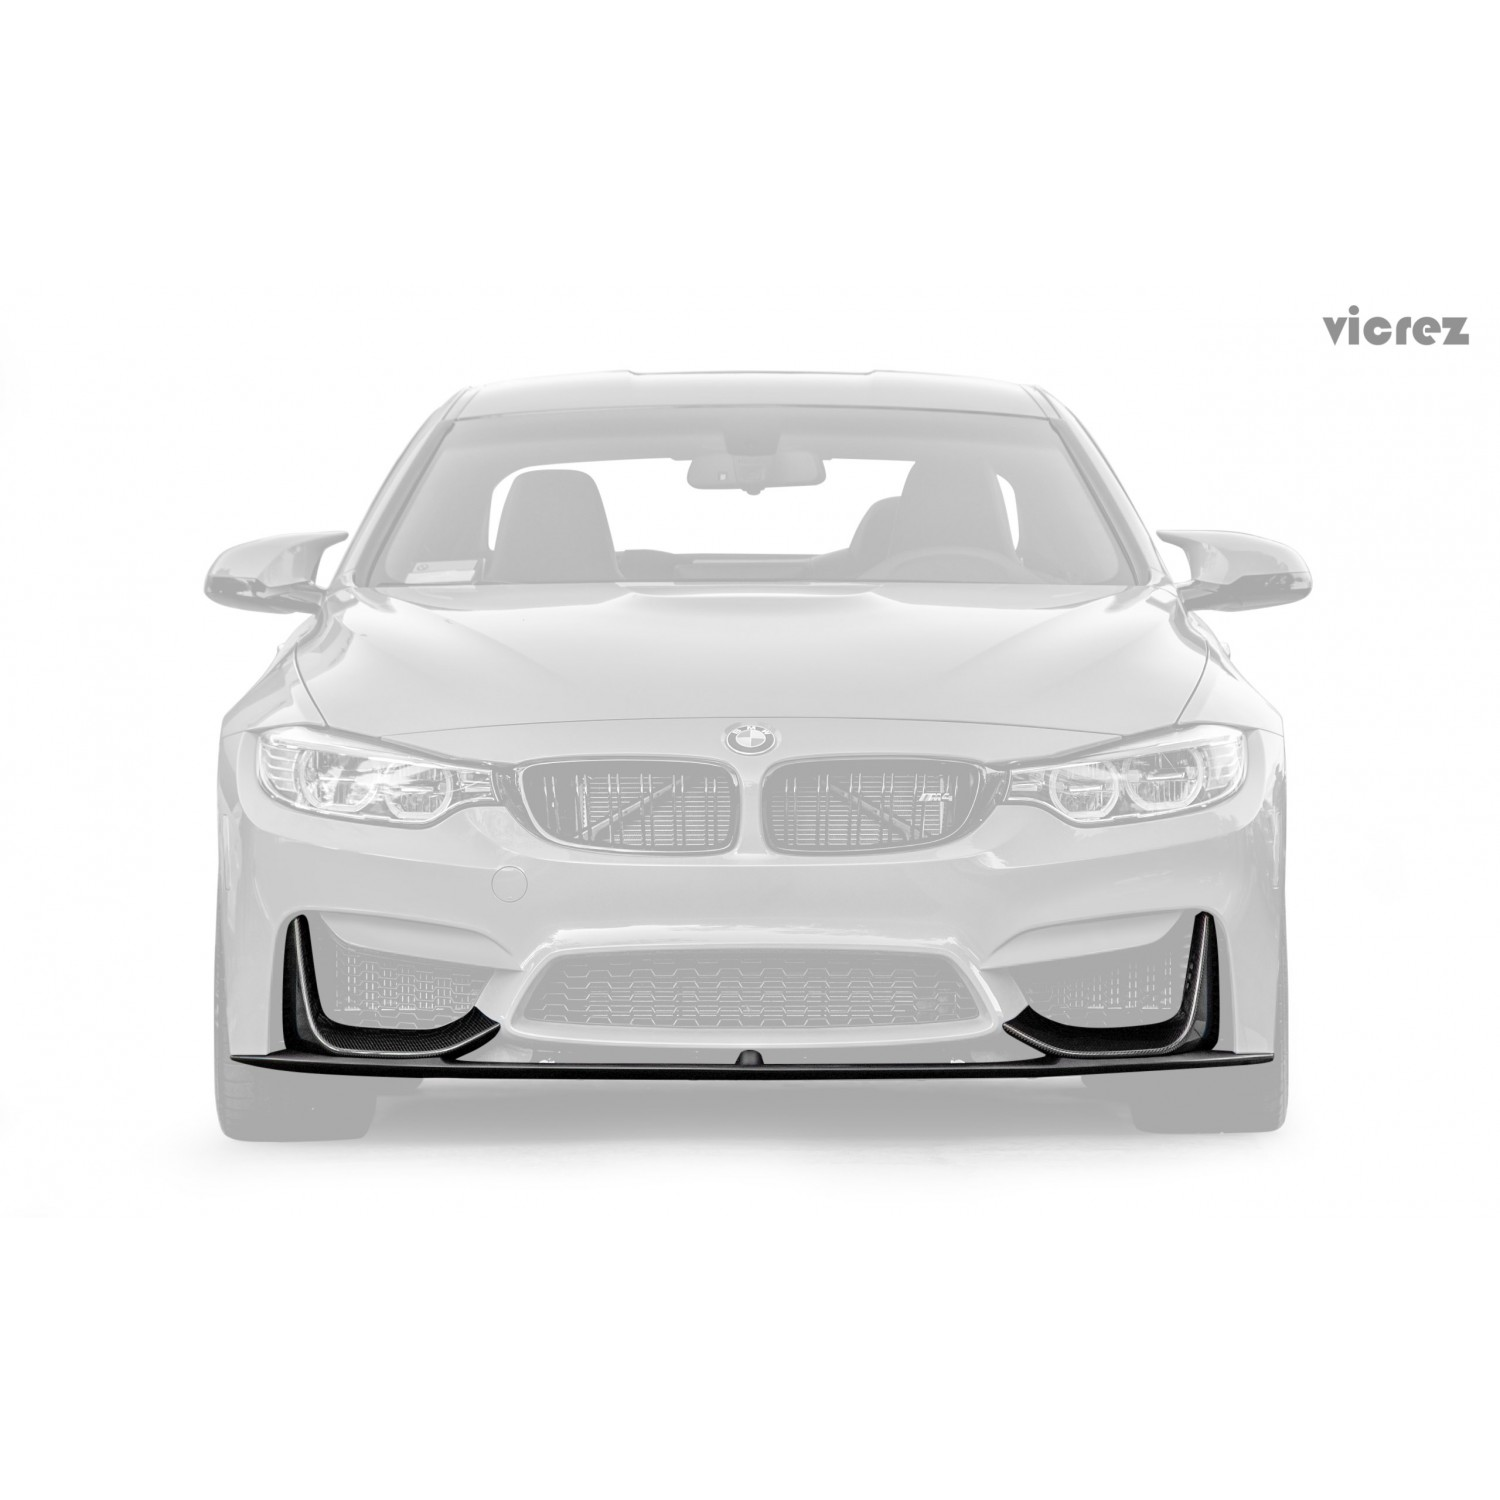 hight resolution of vicrez bmw m3 f80 m4 f82 f83 2014 2018 vz carbon fiber front lip vz100412